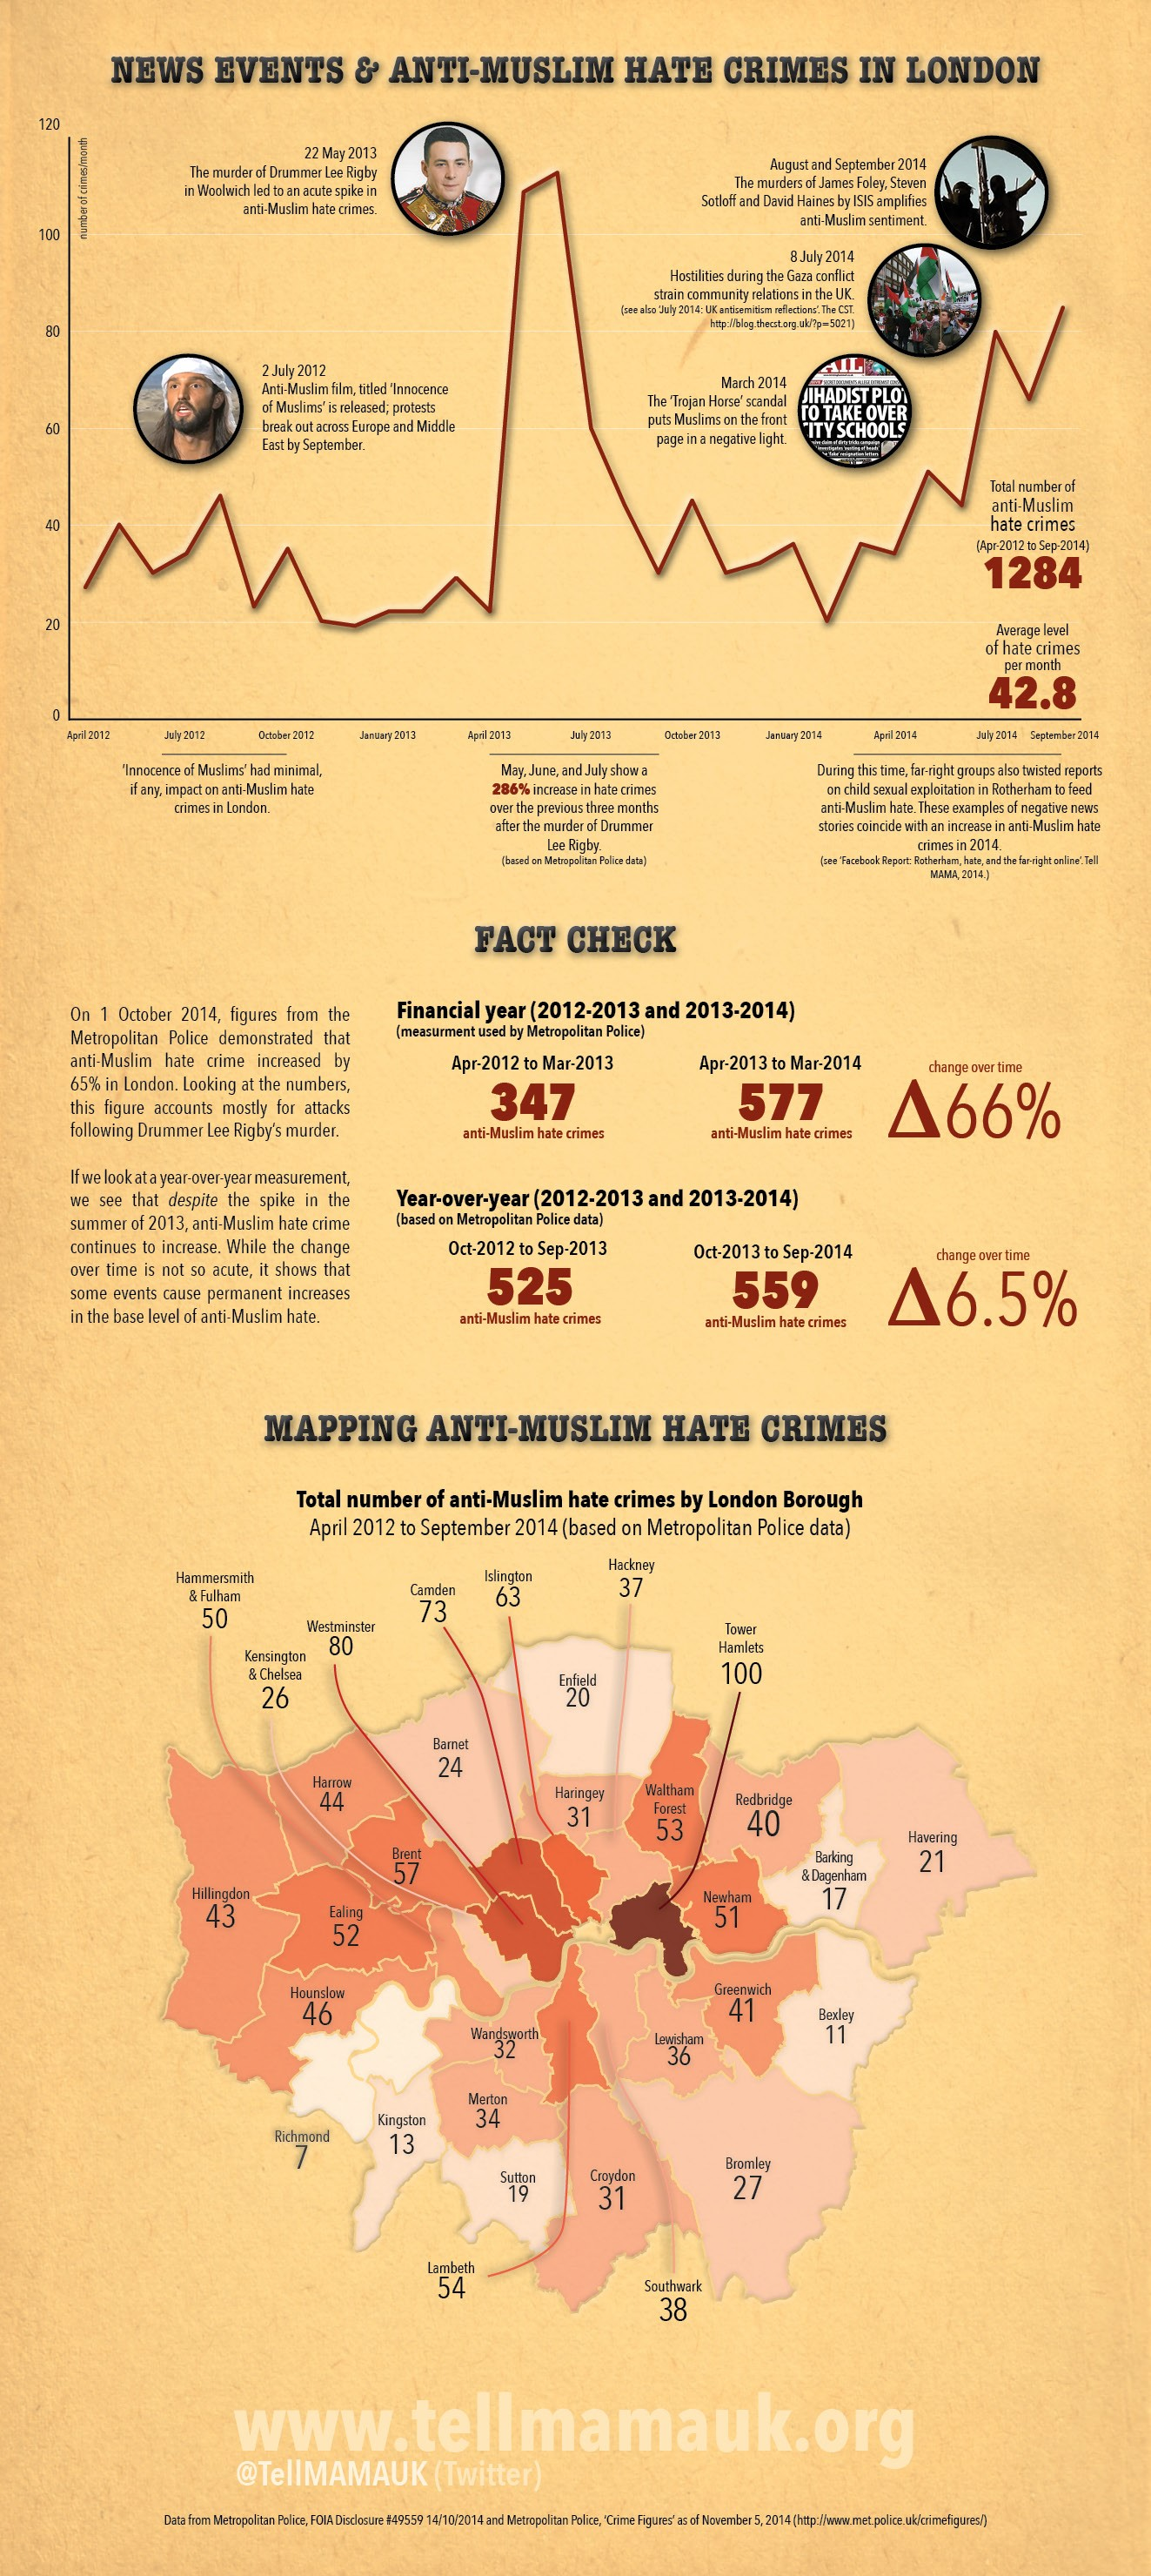 Infographic Showing the Peaks and Troughs on Anti-Muslim Hate Crimes